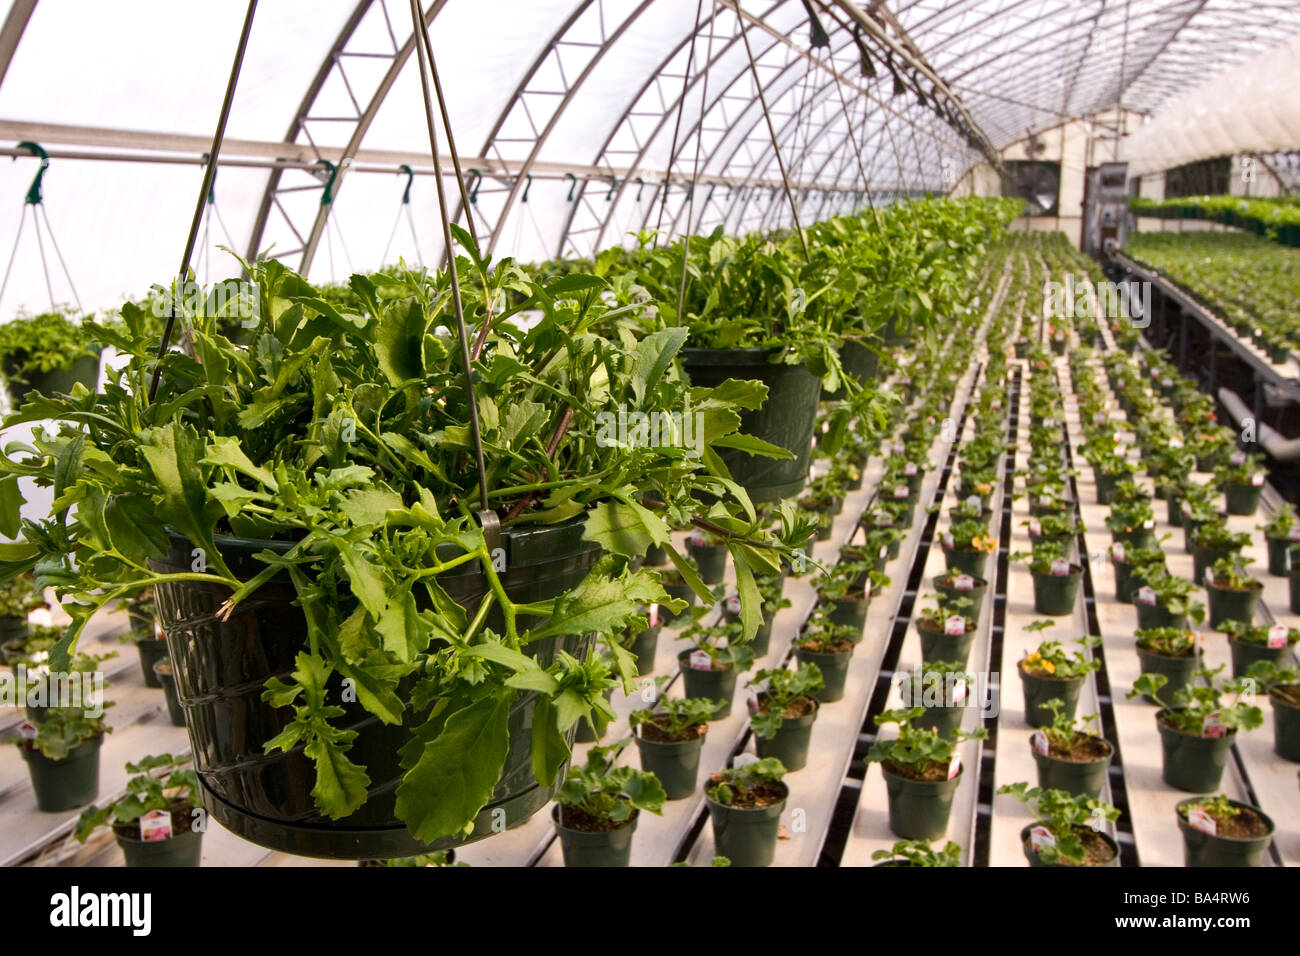 Greenhouse with rows of potted plants. - Stock Image